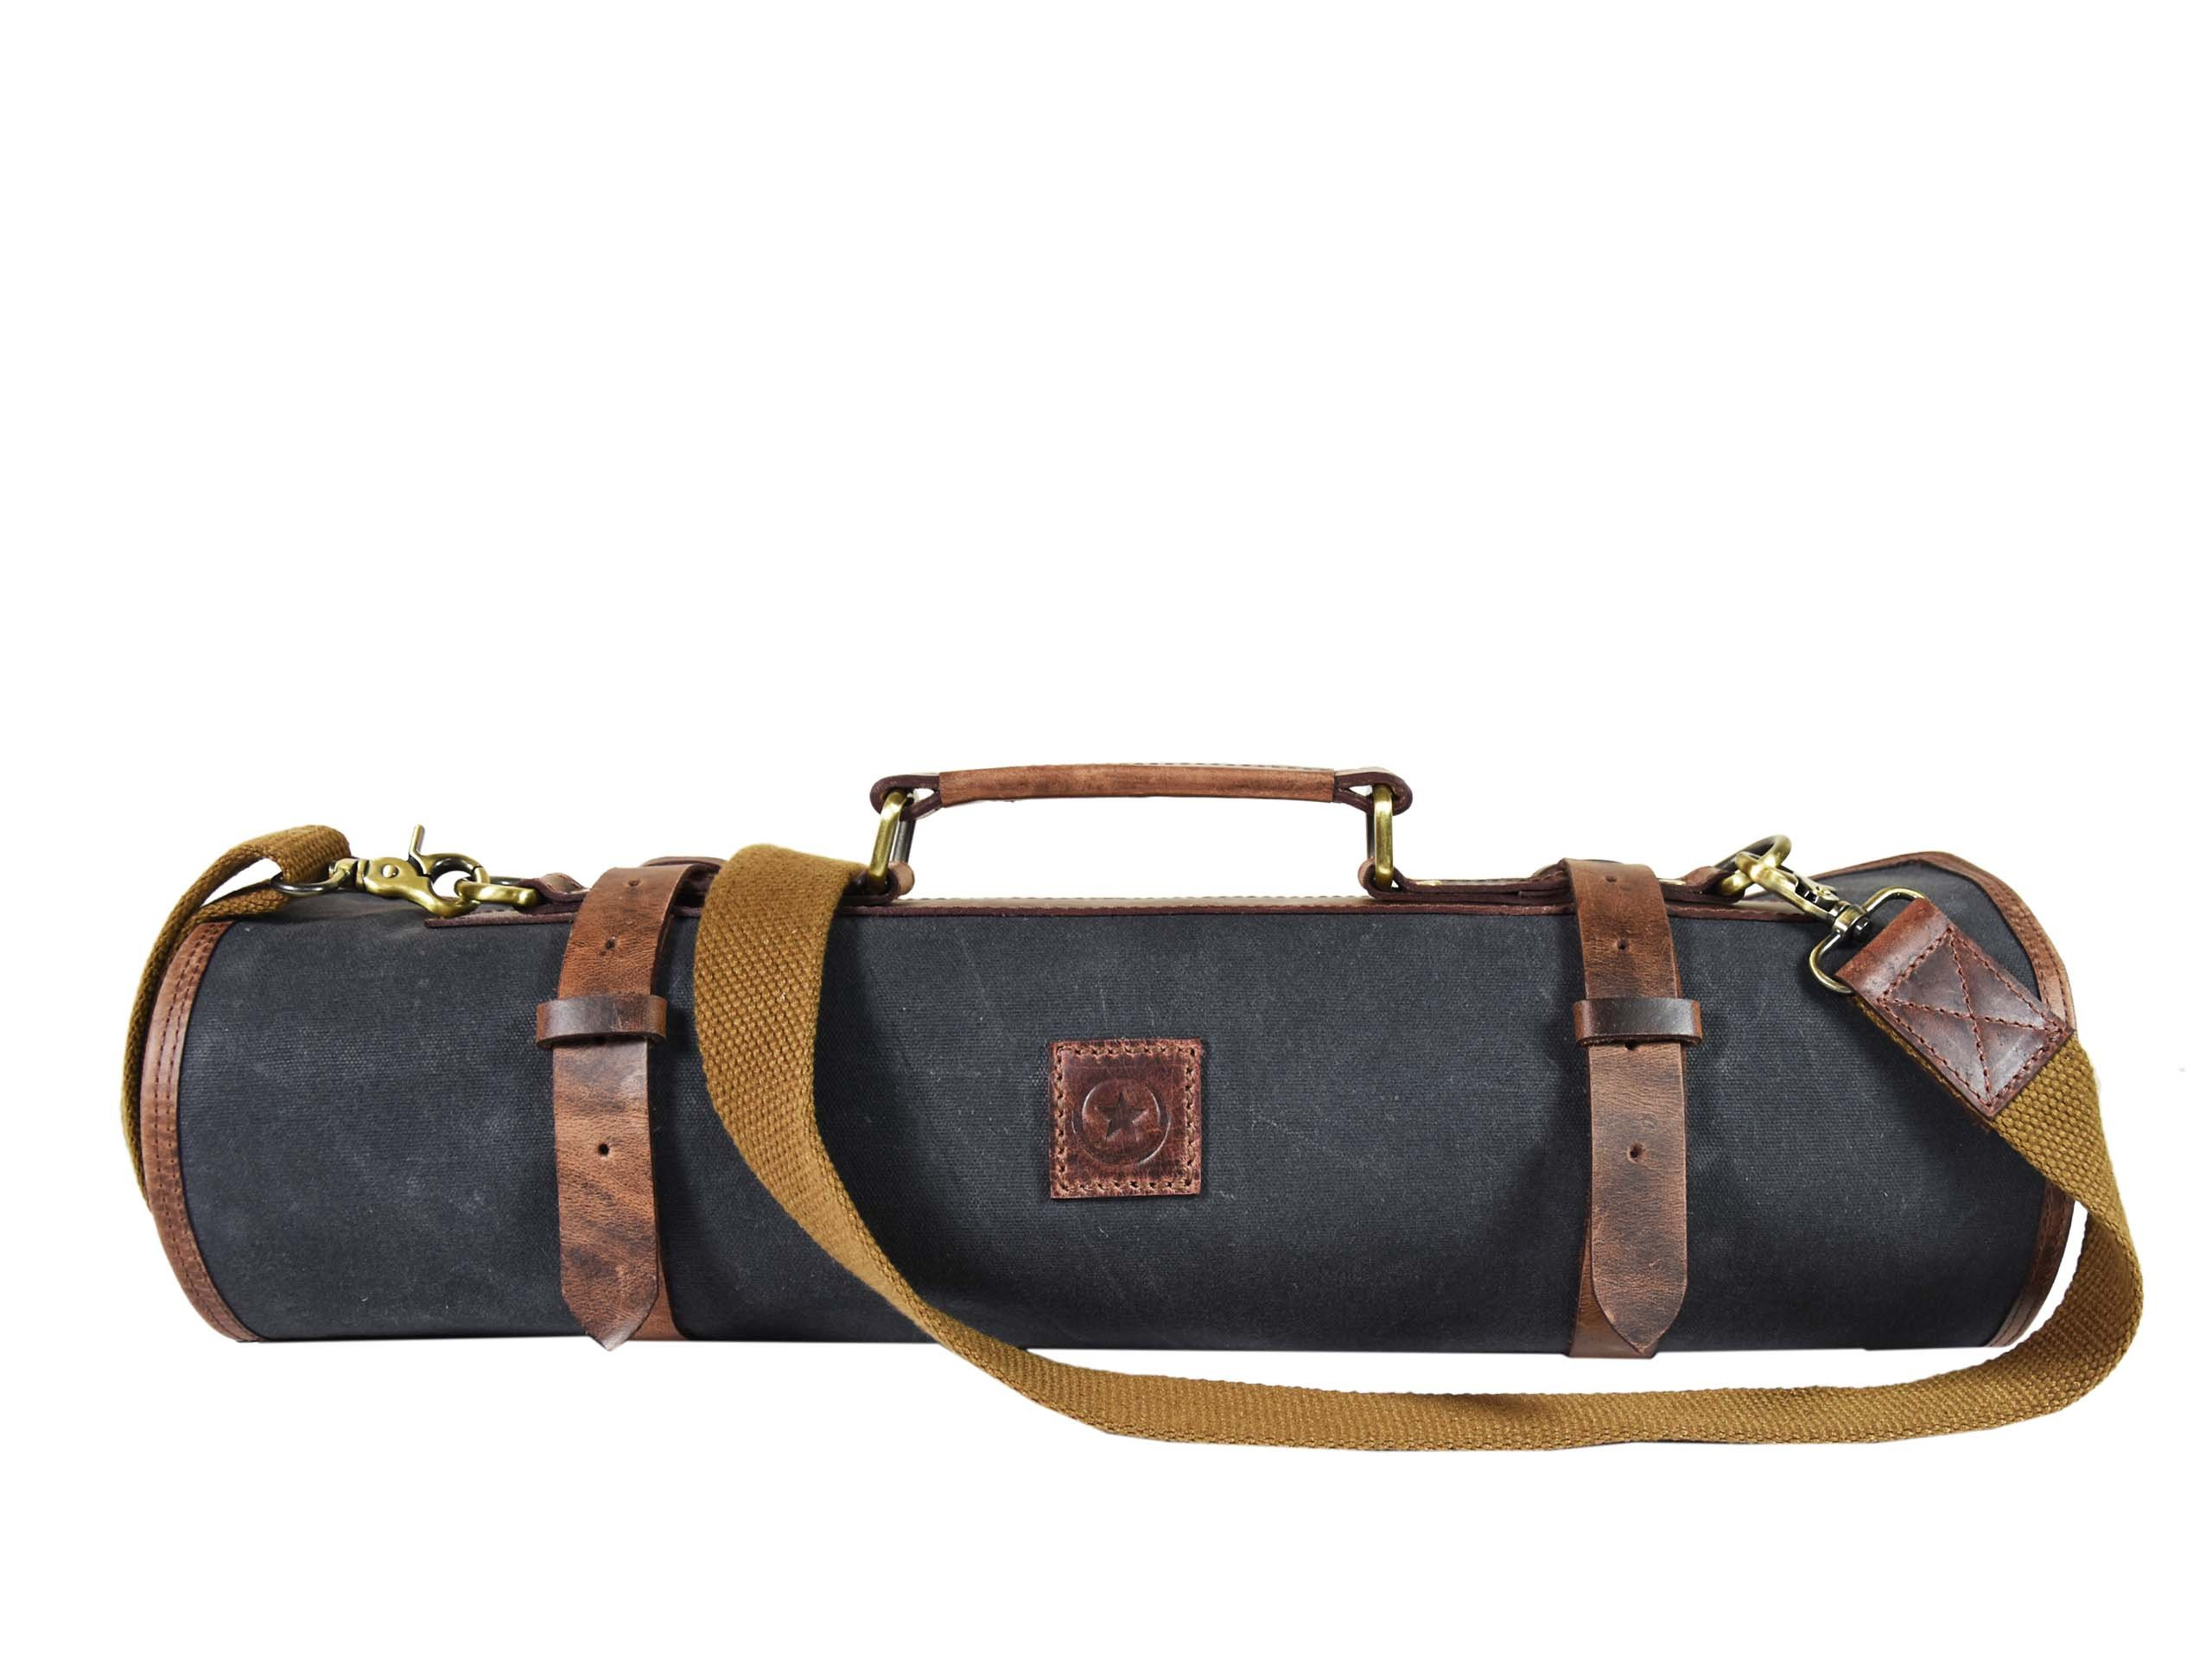 Leather Knife Roll Chef Roll Storage Bag Aaron Leather (Fossil Grey) by Aaron Leather (Image #1)